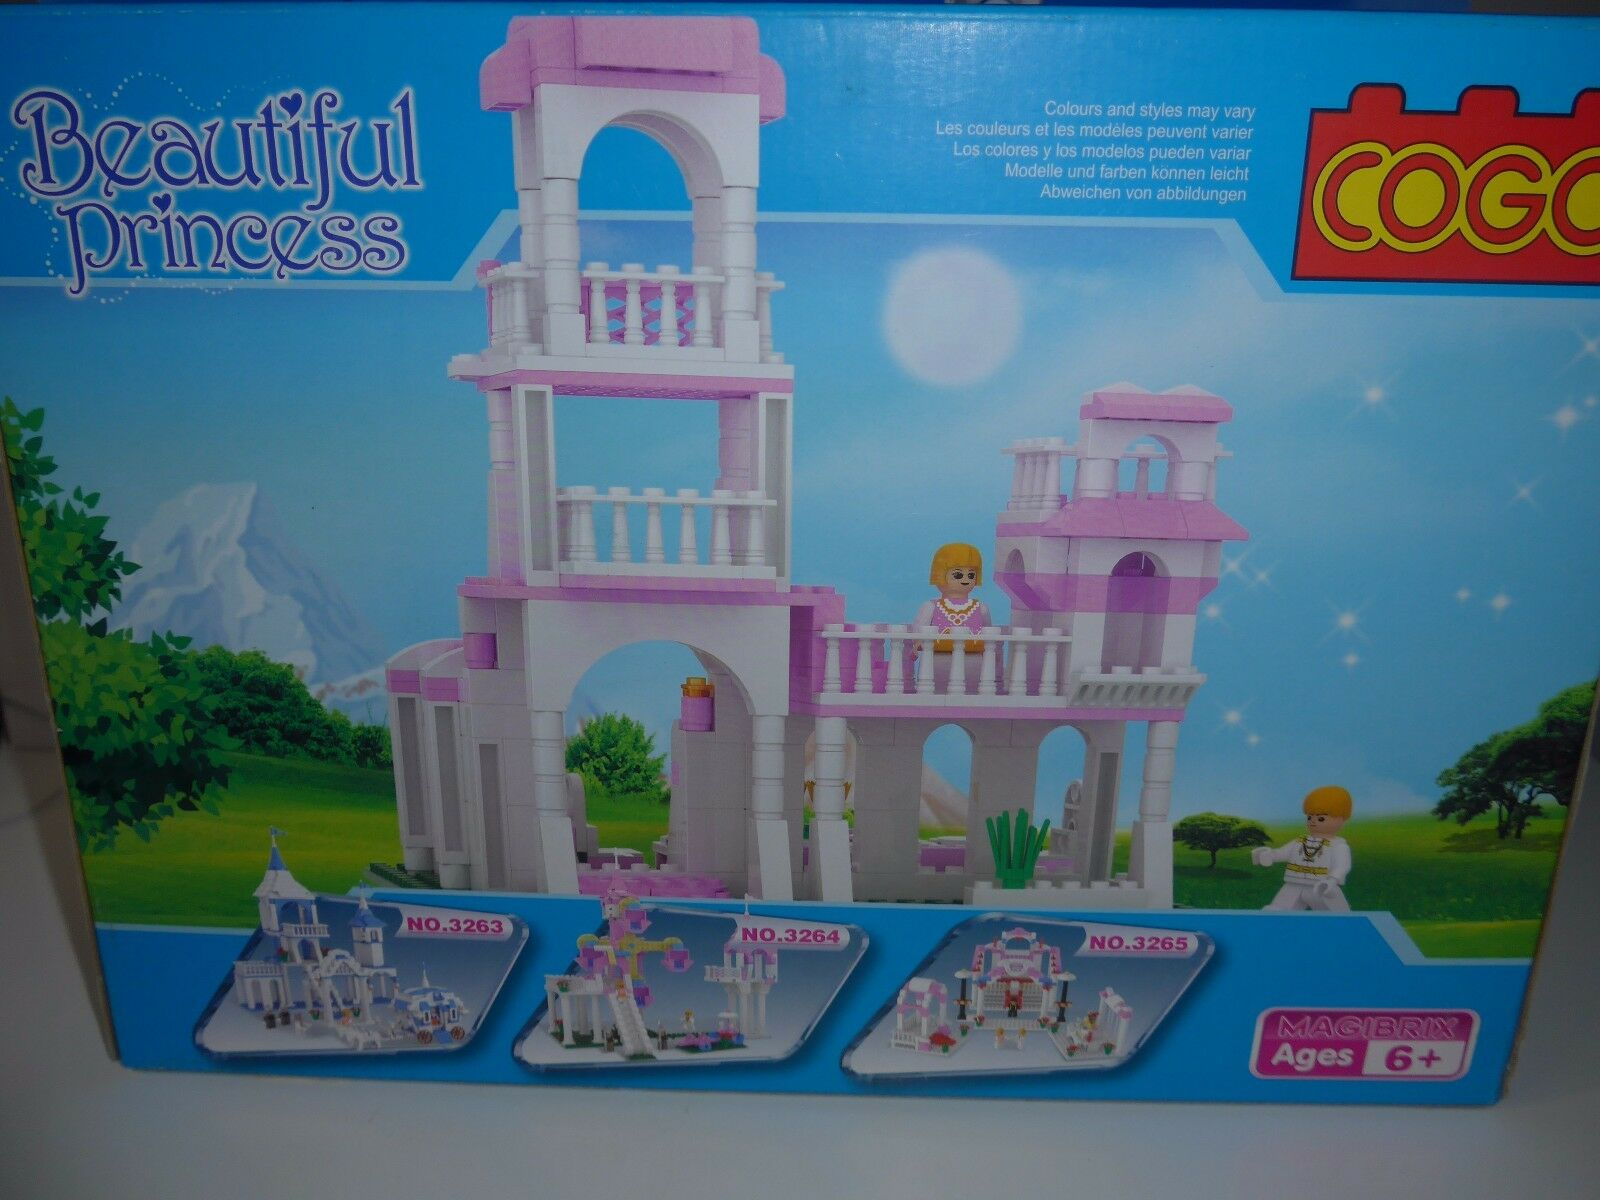 Beautiful Princess Cogo building set for ages 6 yrs + Get in time for Christmas